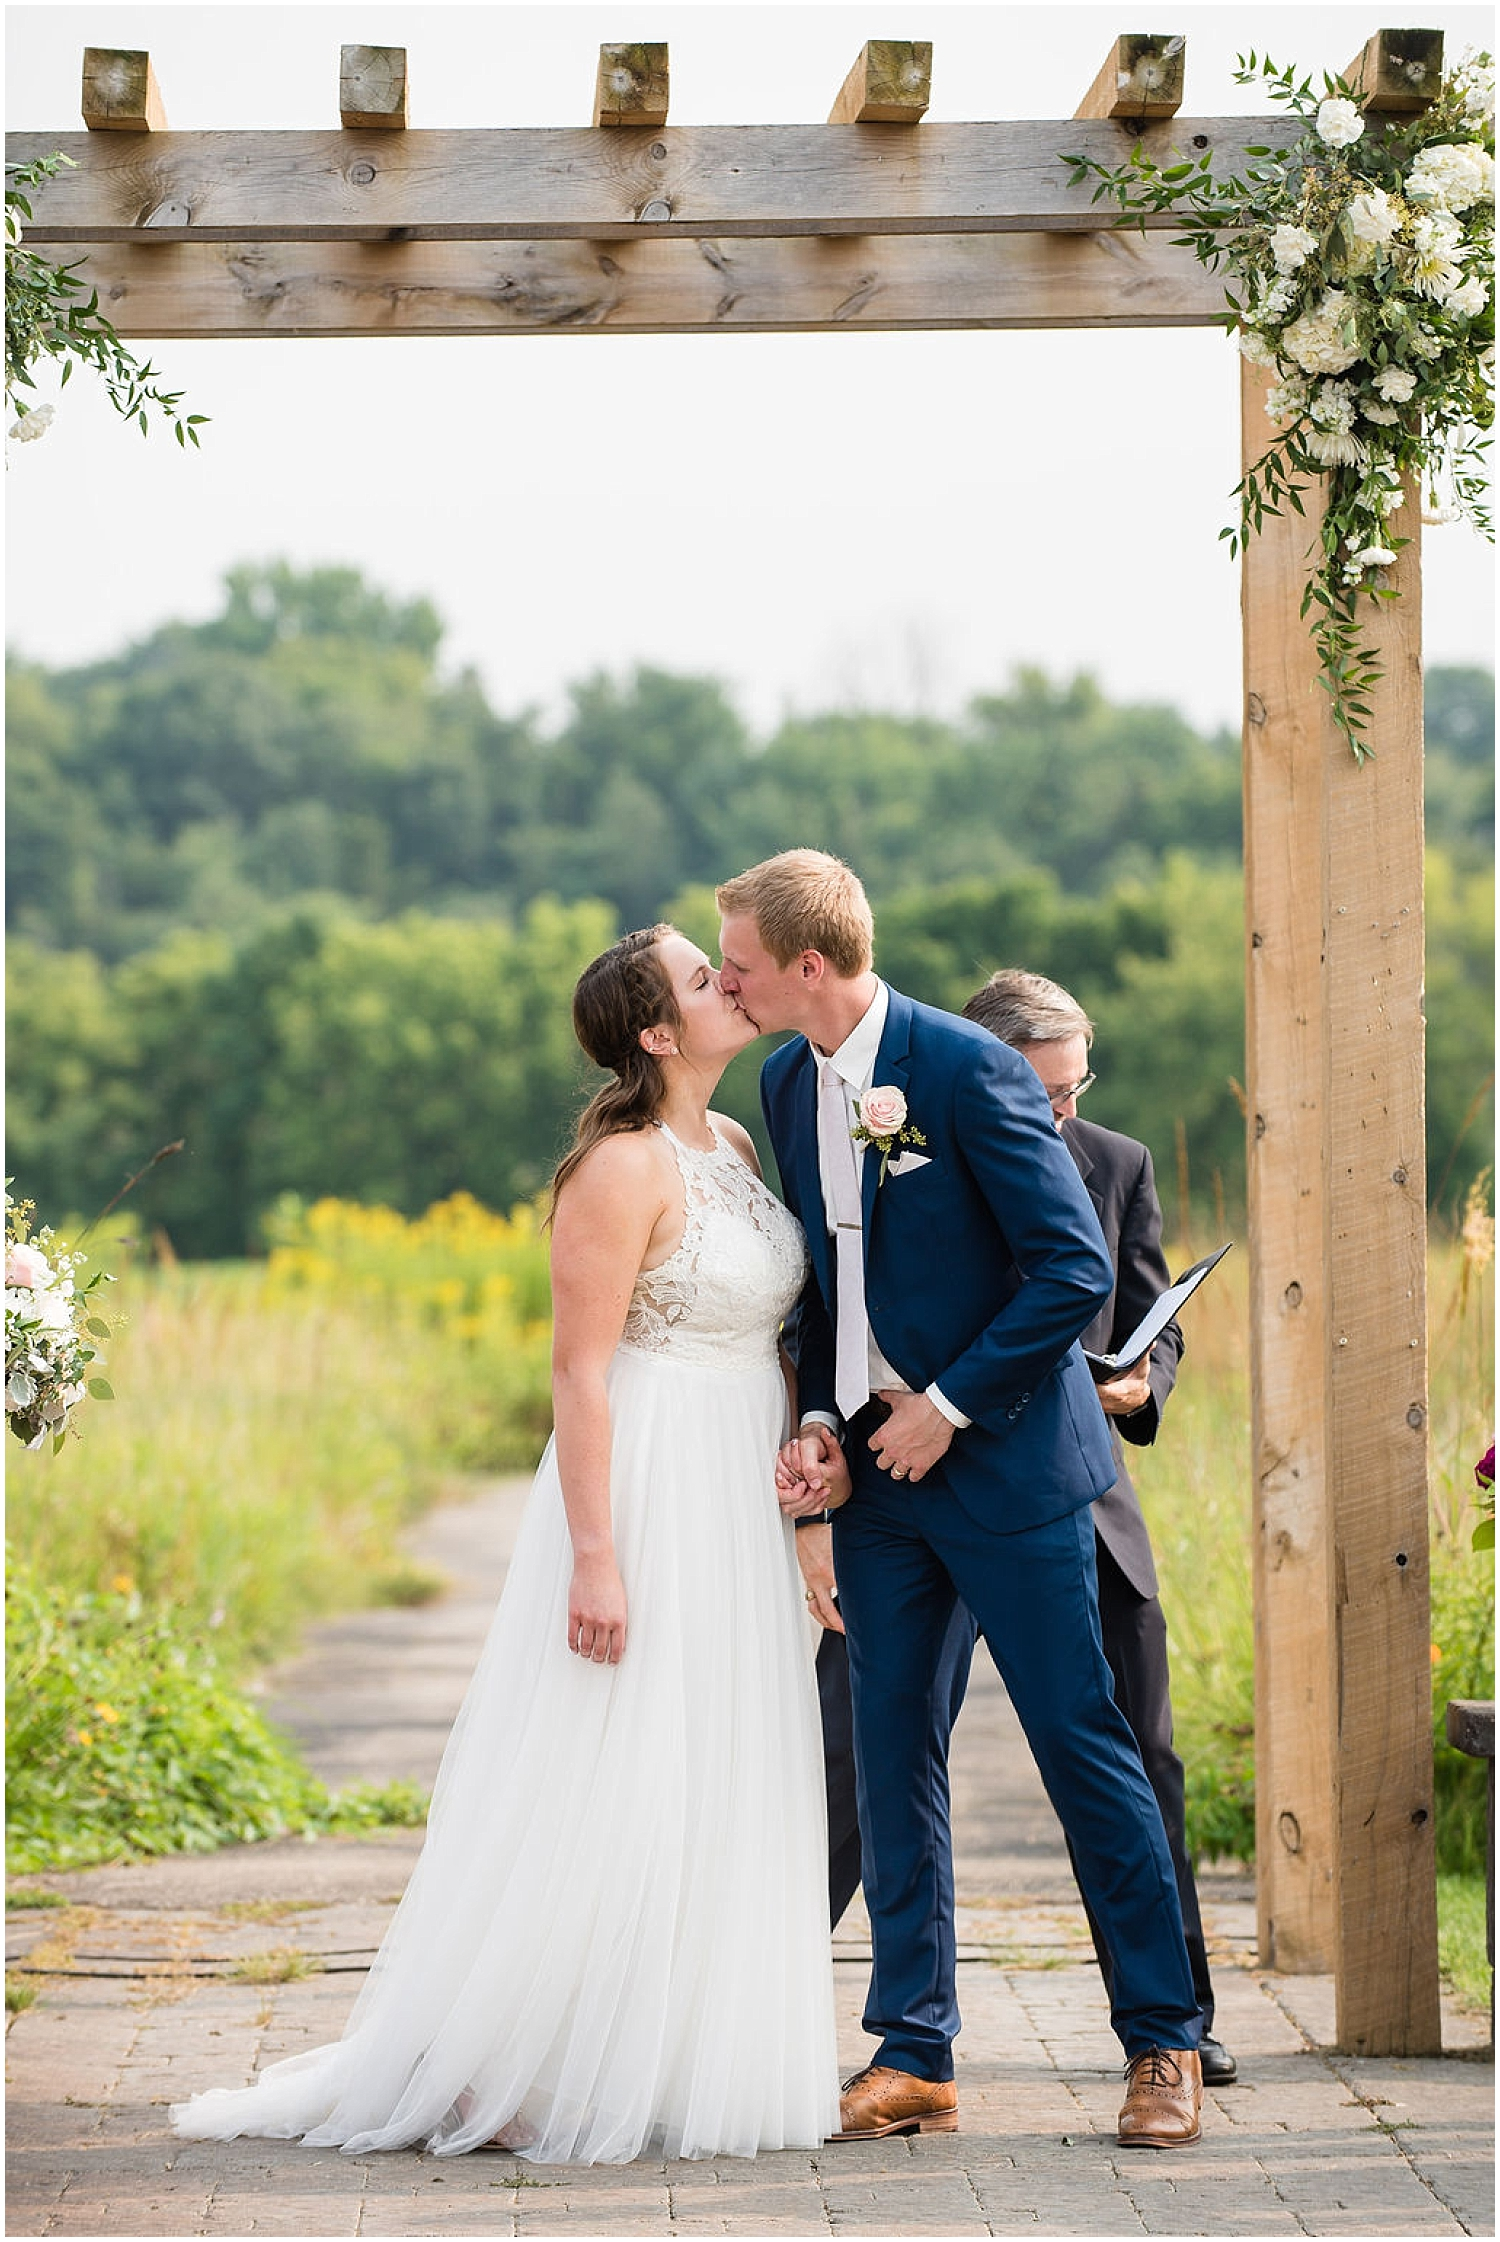 bride and groom kiss at their outdoor wedding ceremony